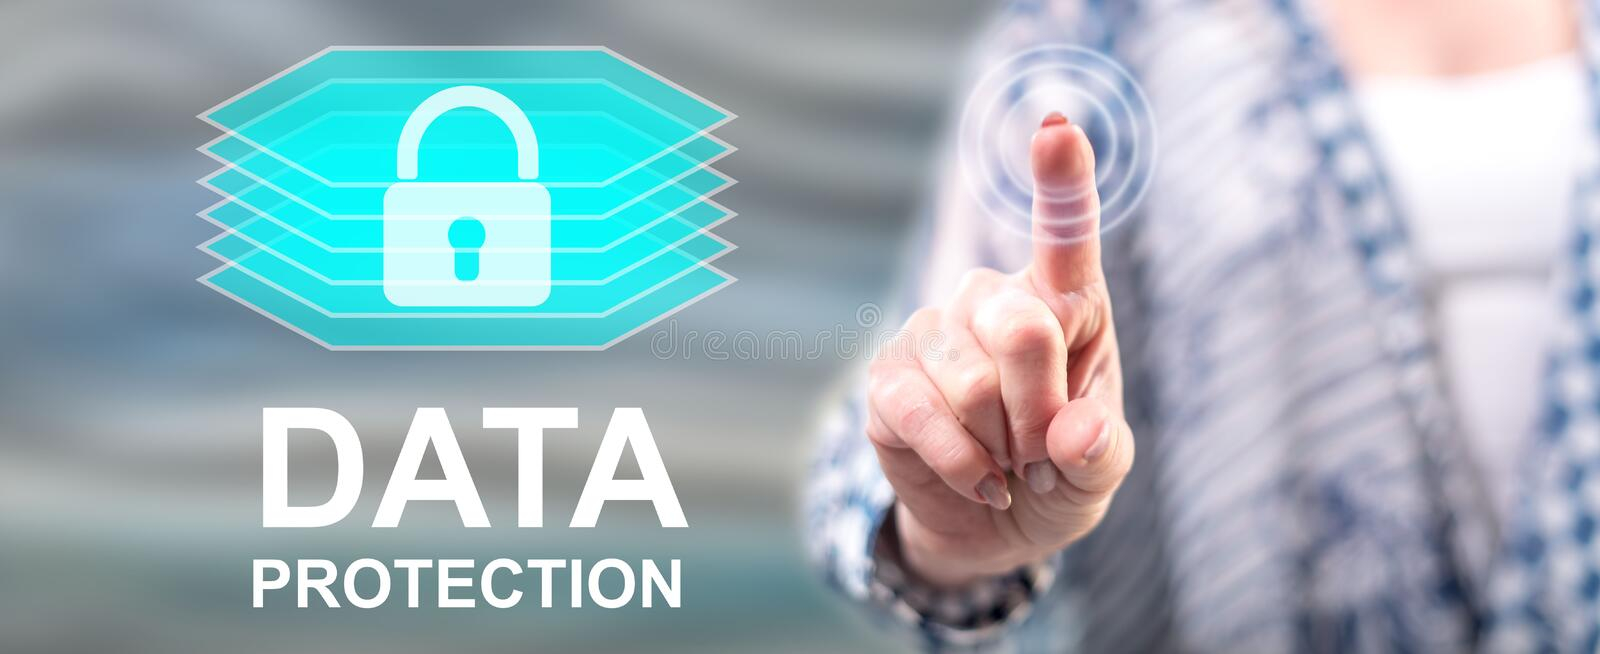 Woman touching a data protection concept stock illustration